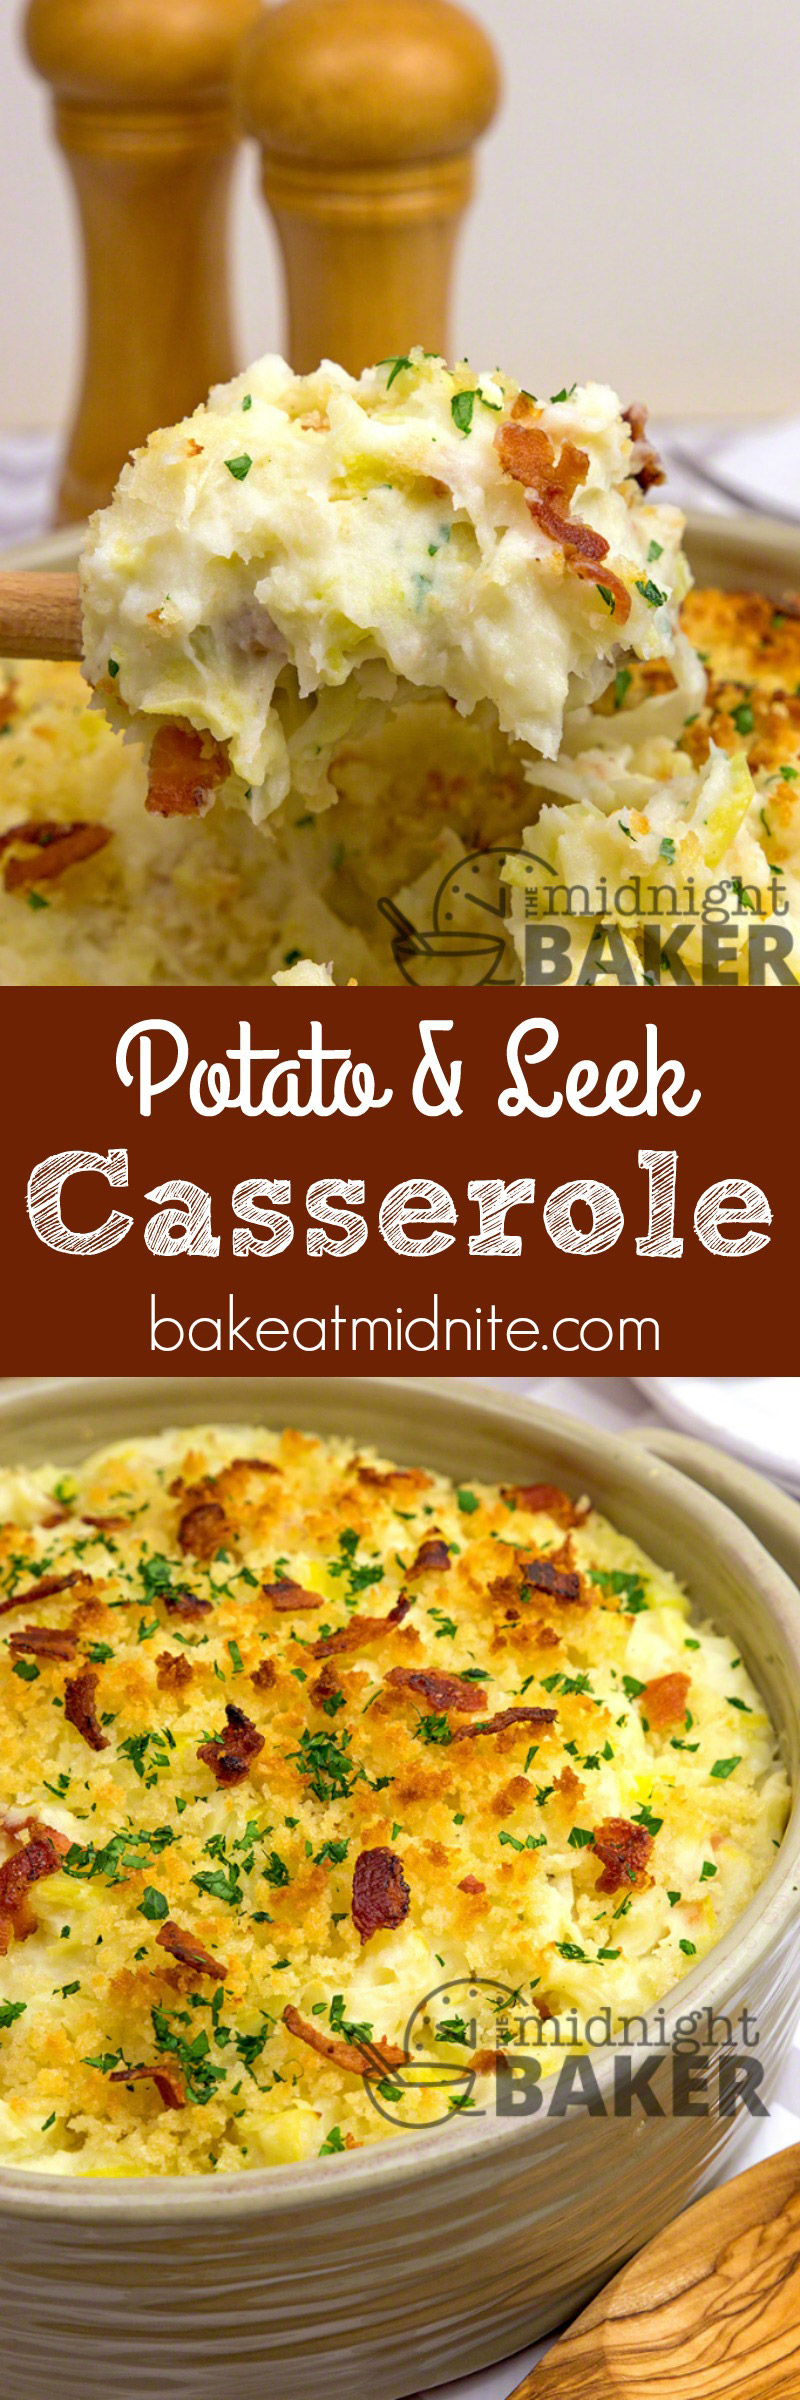 Velvety mashed potatoes combine with savory sauteed leeks to make this tasty side dish casserole. This could be a meal in itself!